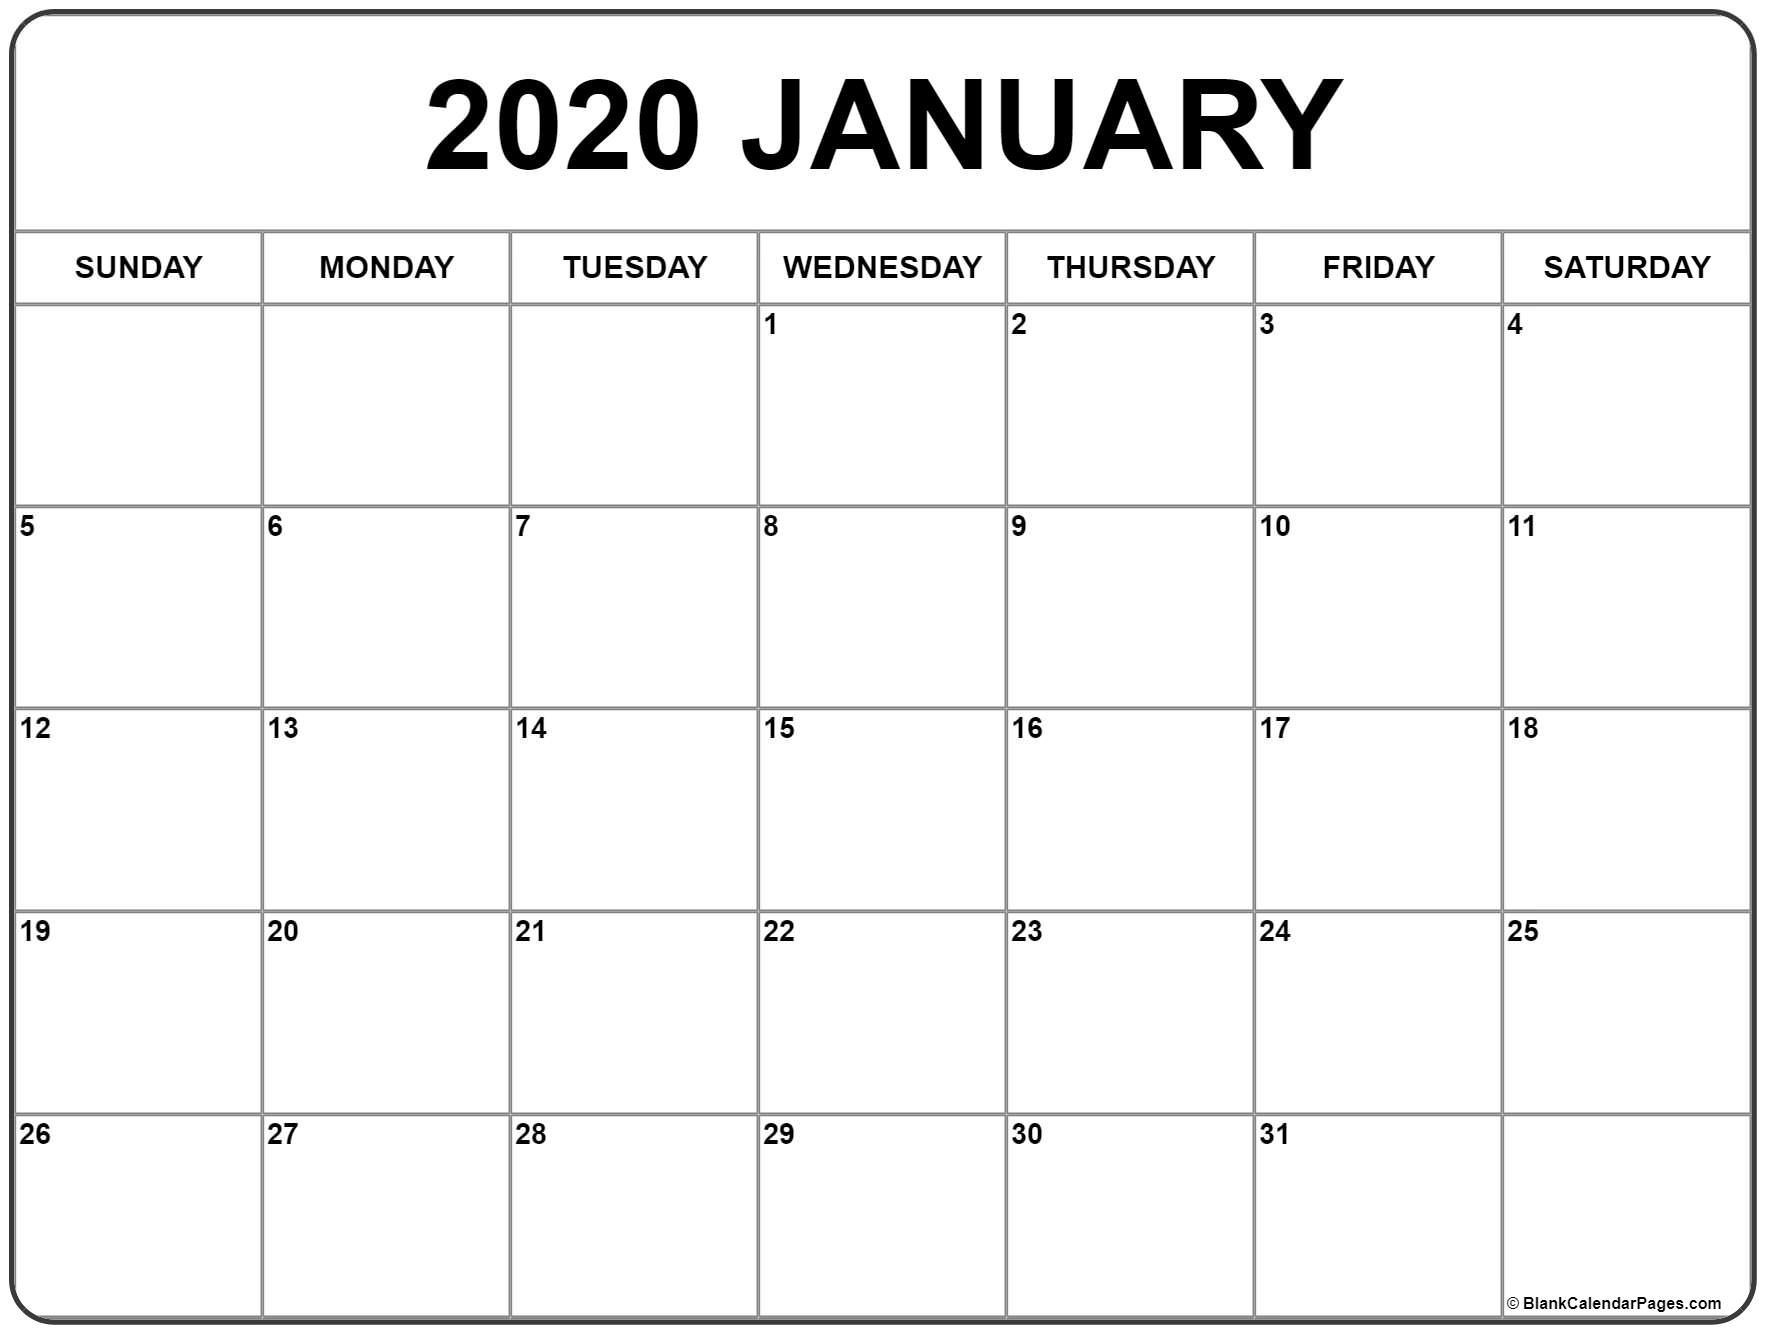 January 2020 Calendar | Free Printable Monthly Calendars  Blank Calendar 2020 Printable Monthly